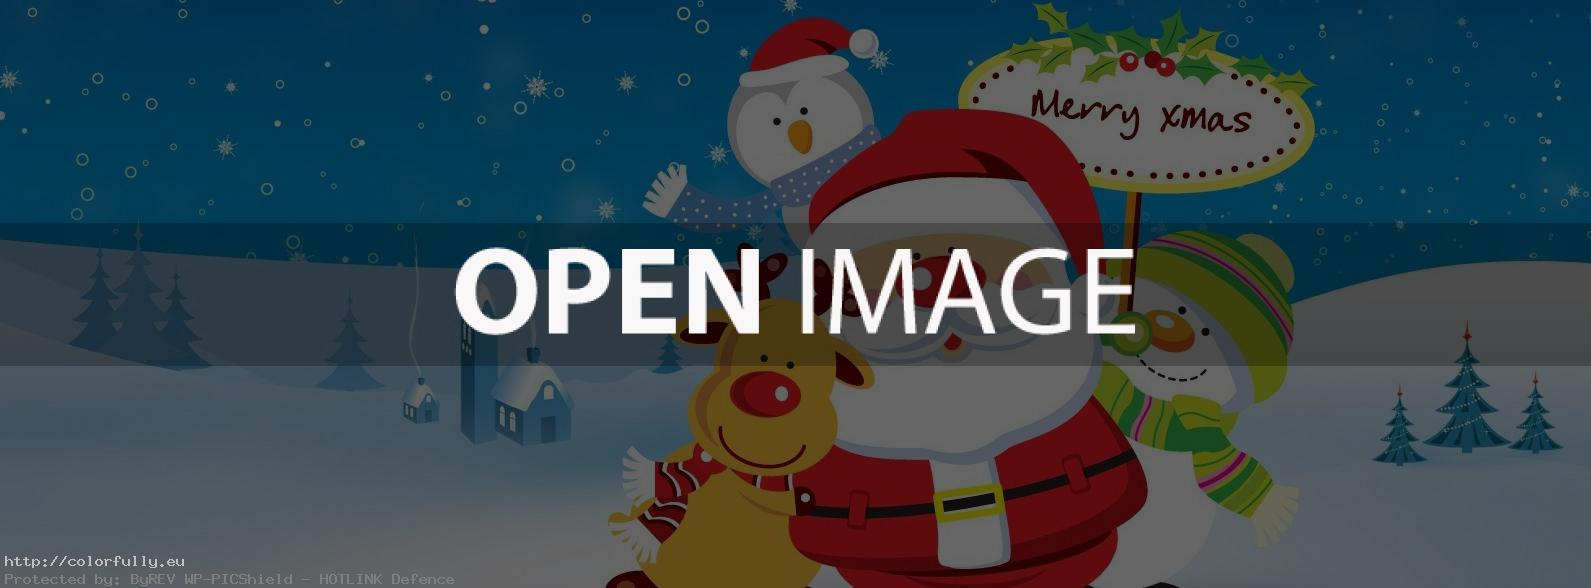 Santa Merry Xmas – Facebook cover